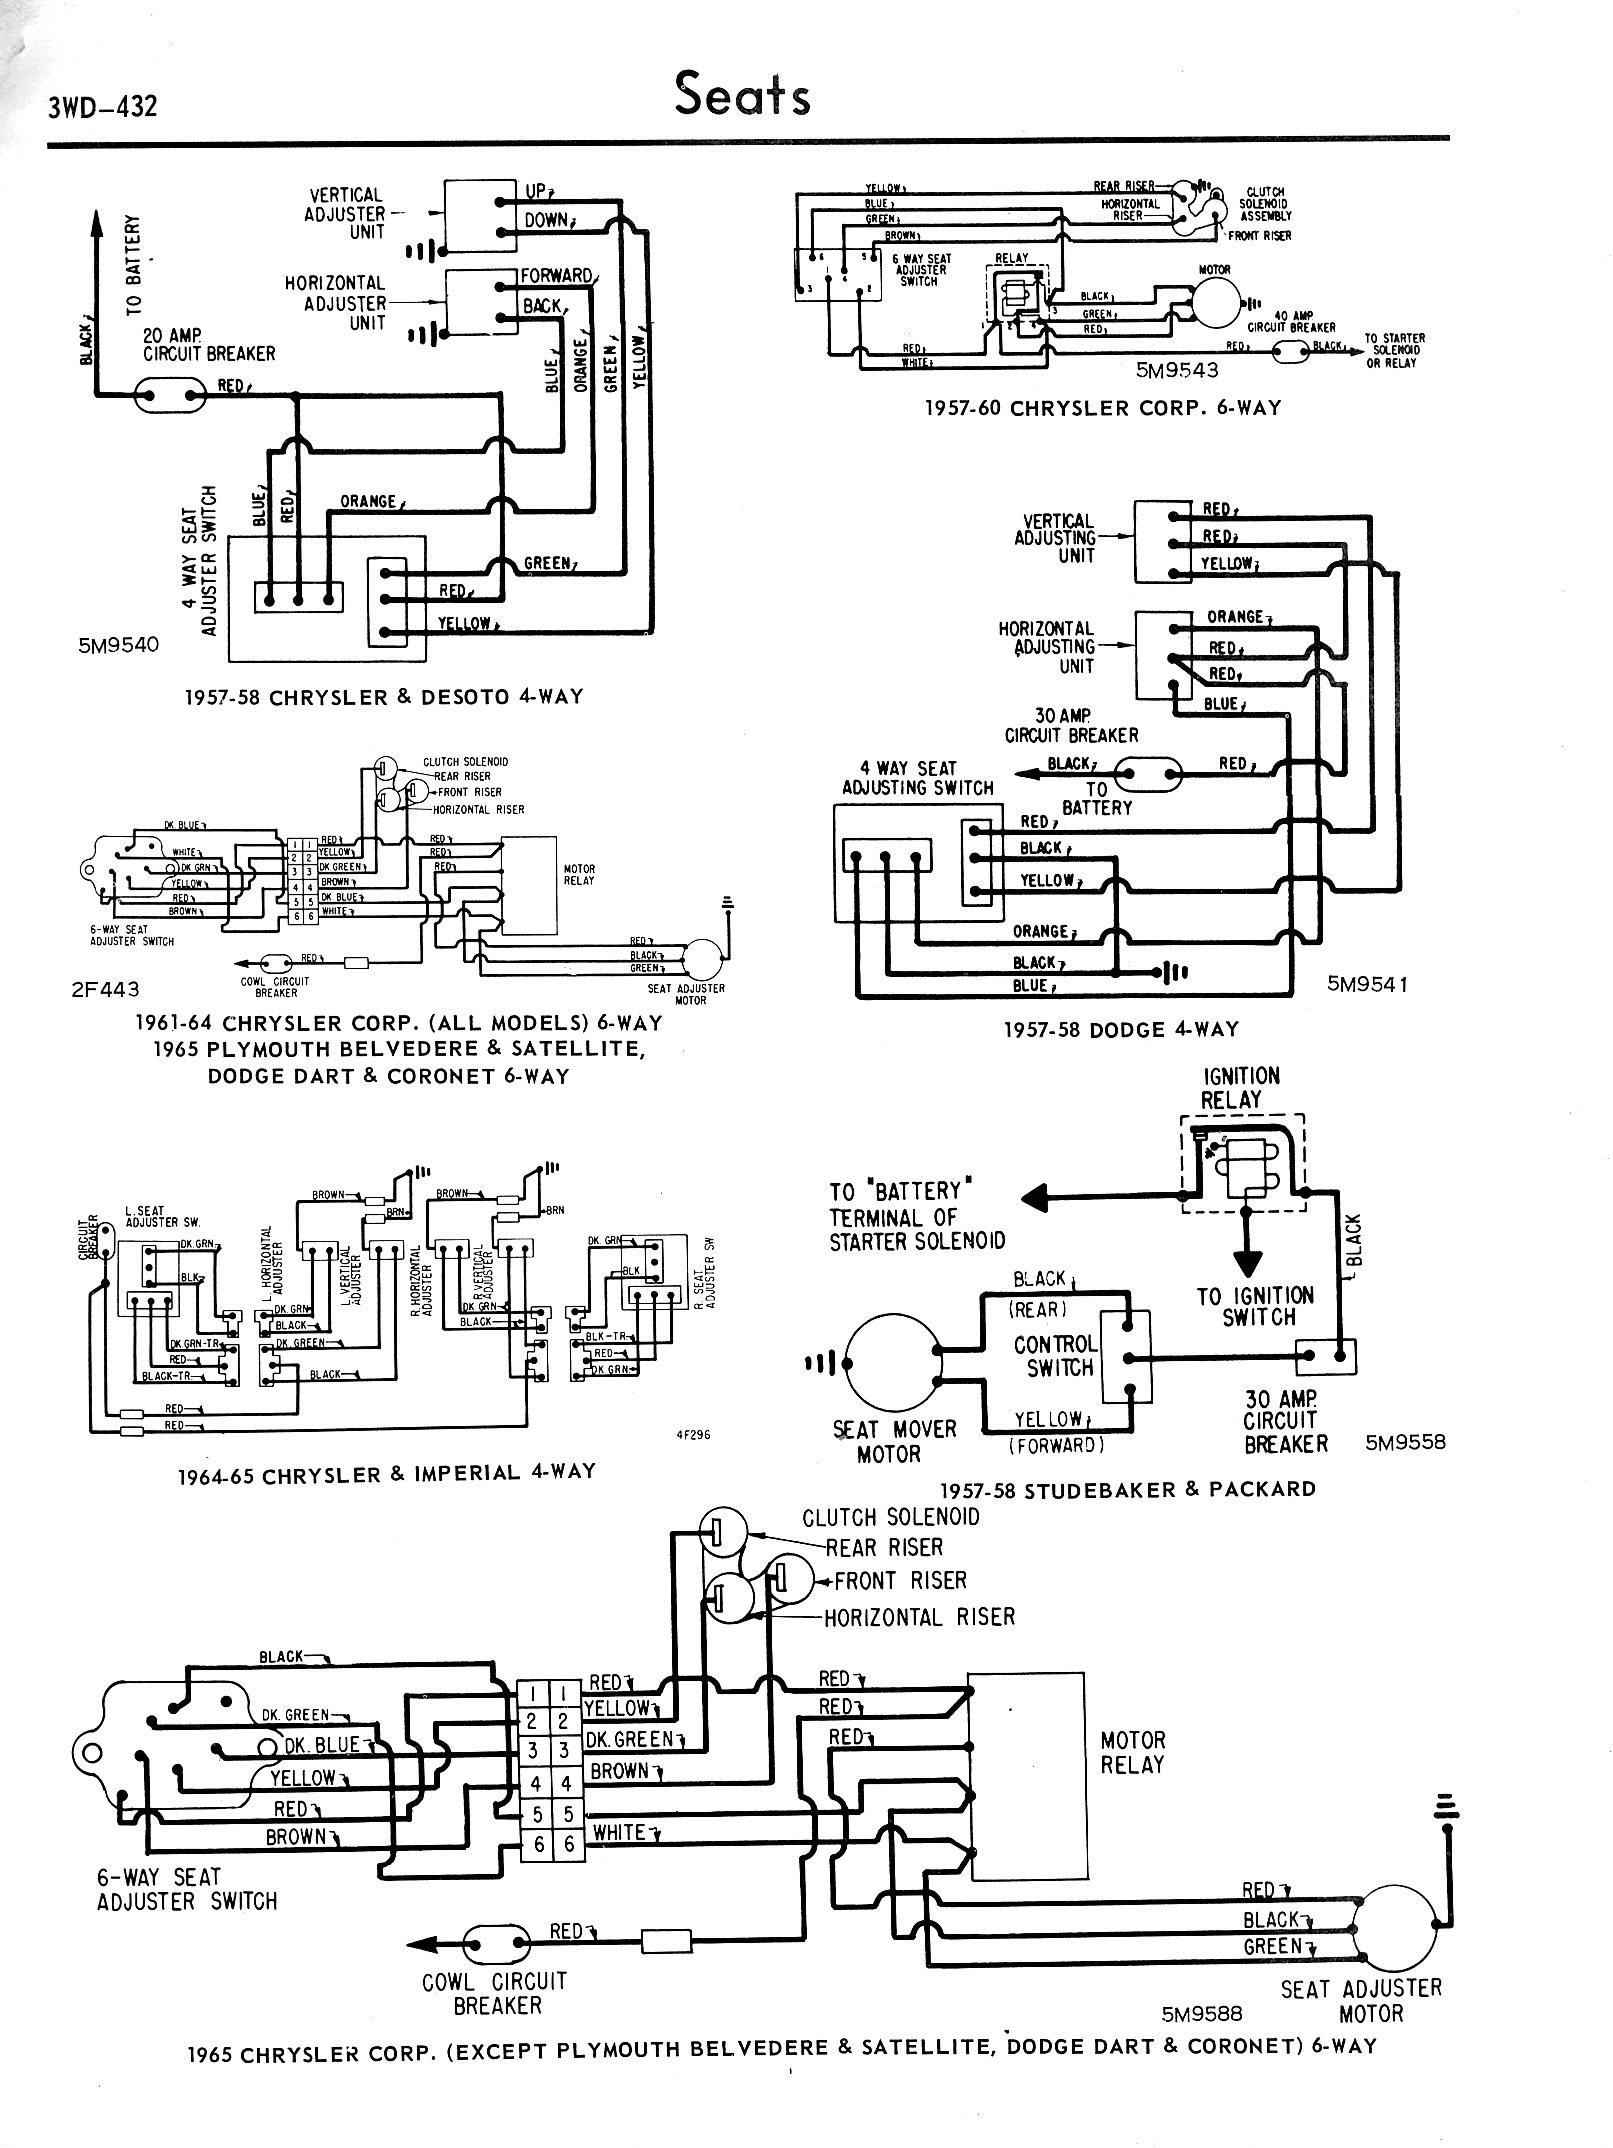 2004 Xj8 Air Bag Airline Connector Leaking 94056 besides Cherokee Xj 2037 as well 3WD 432 as well Bx2230 Kubota Wiring Diagram as well Westinghouse 3 Sd Fan Switch 77021 Wiring Diagram. on old wiring diagrams